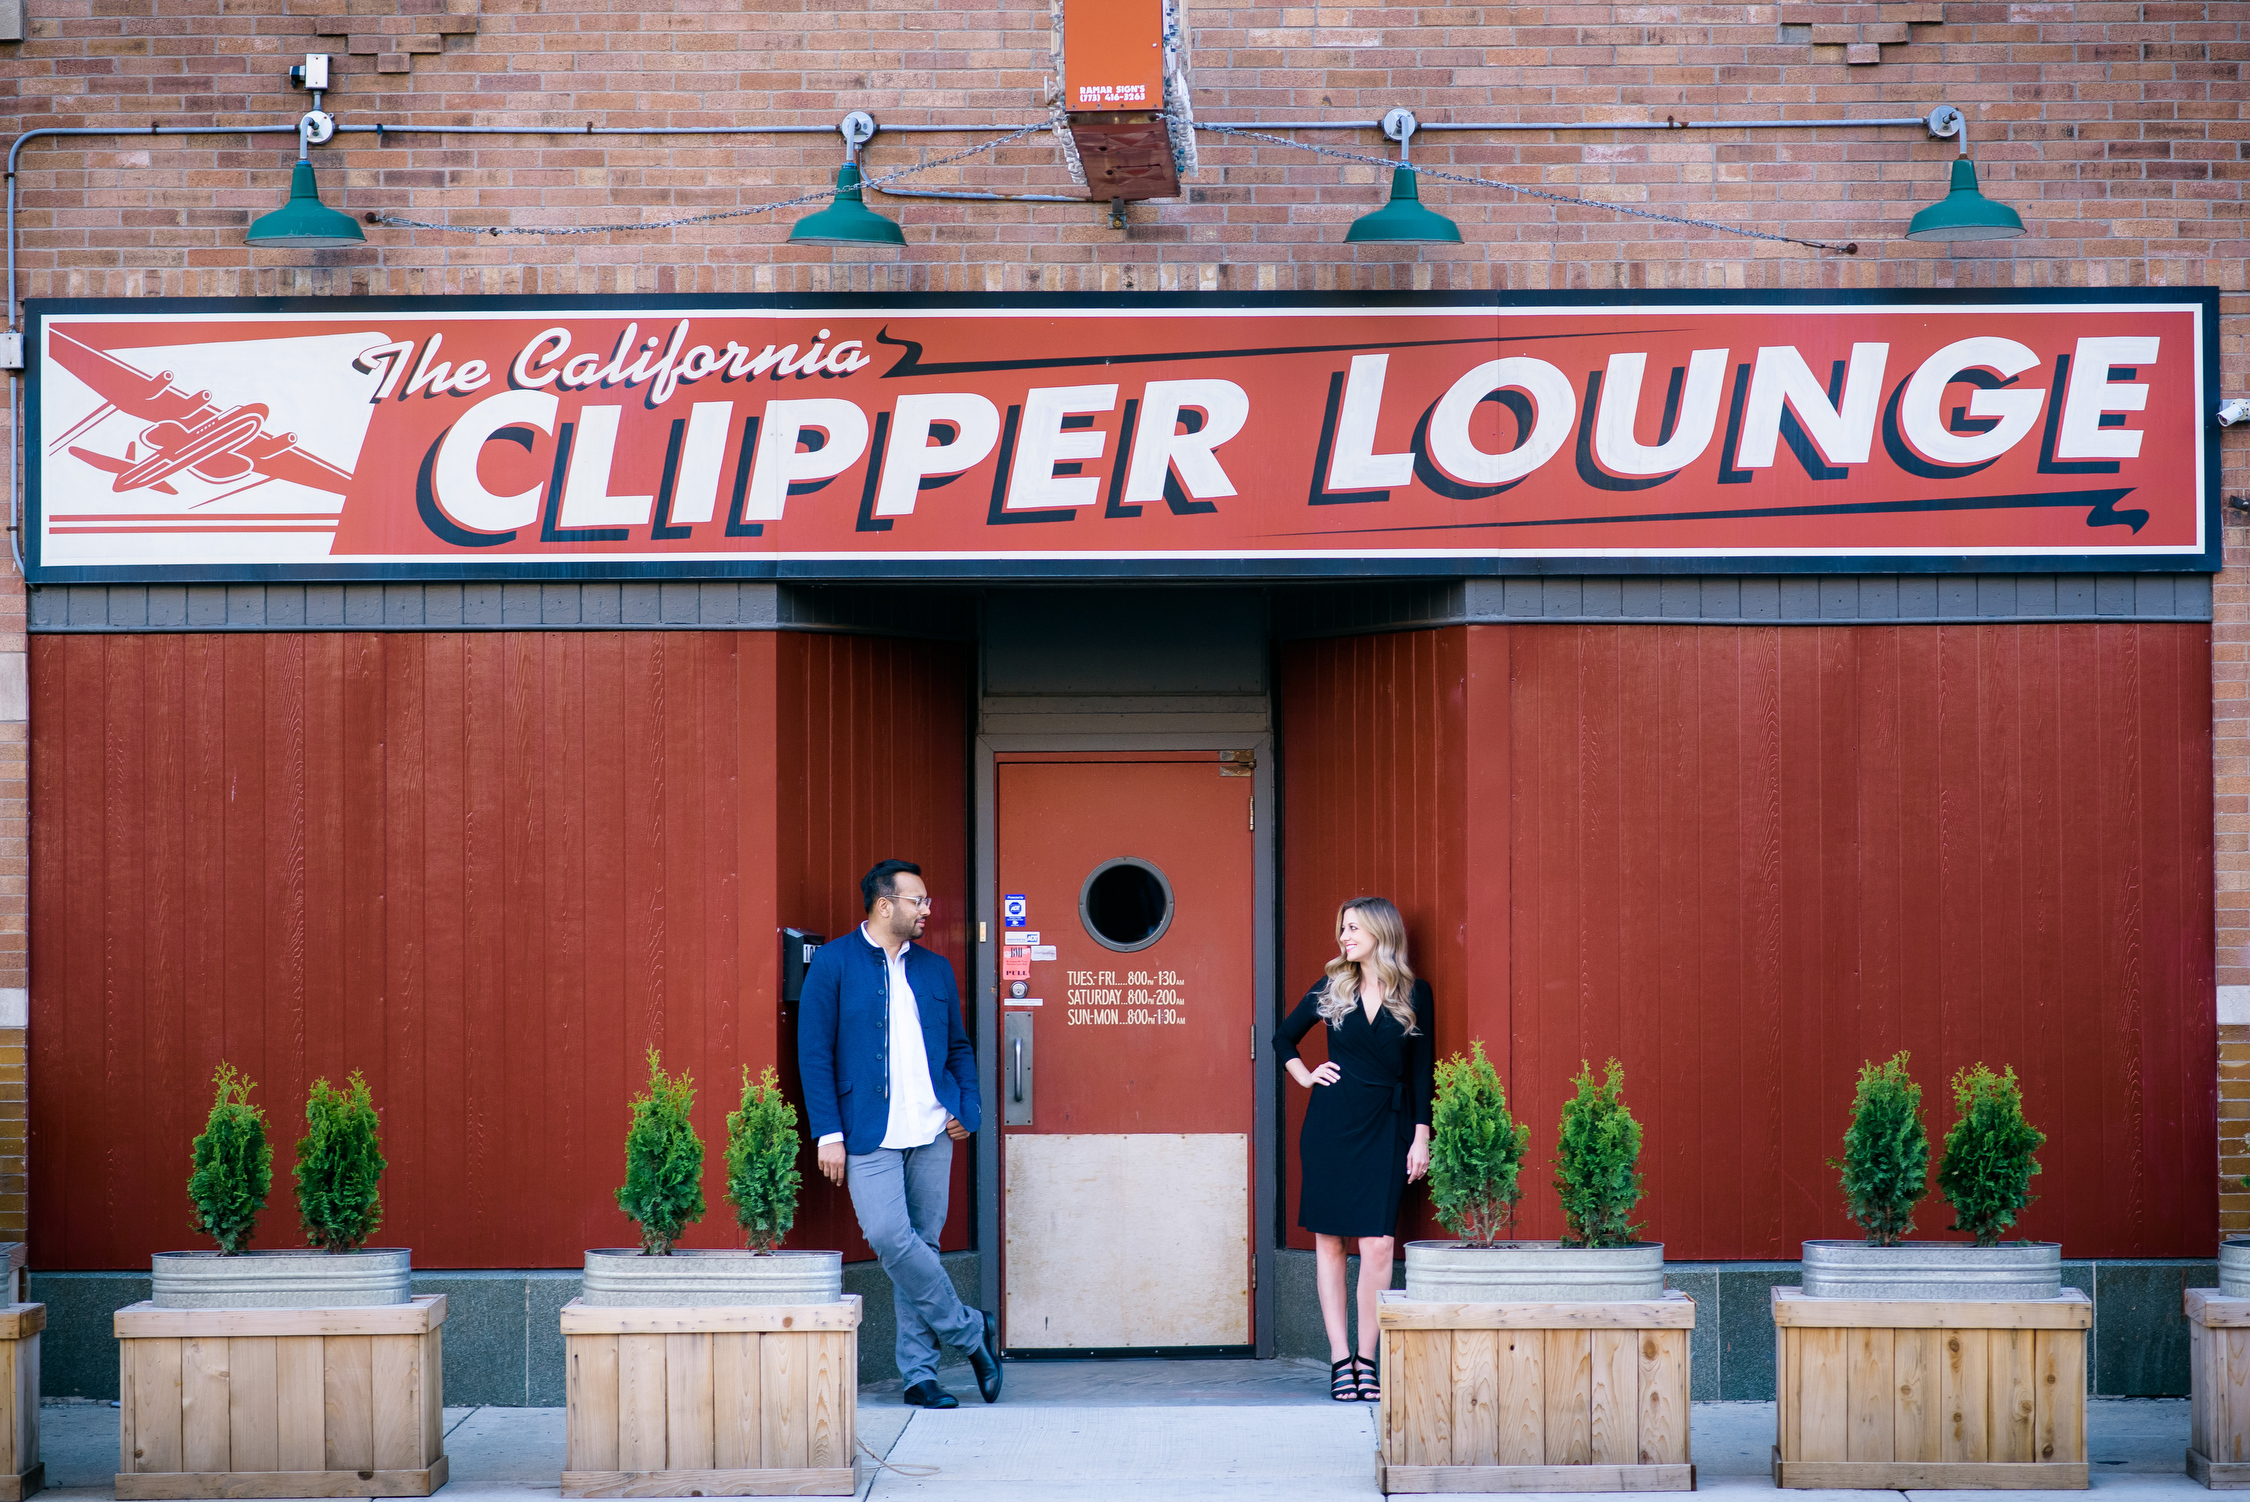 Humboldt Park Chicago engagement session at the California Clipper Lounge.